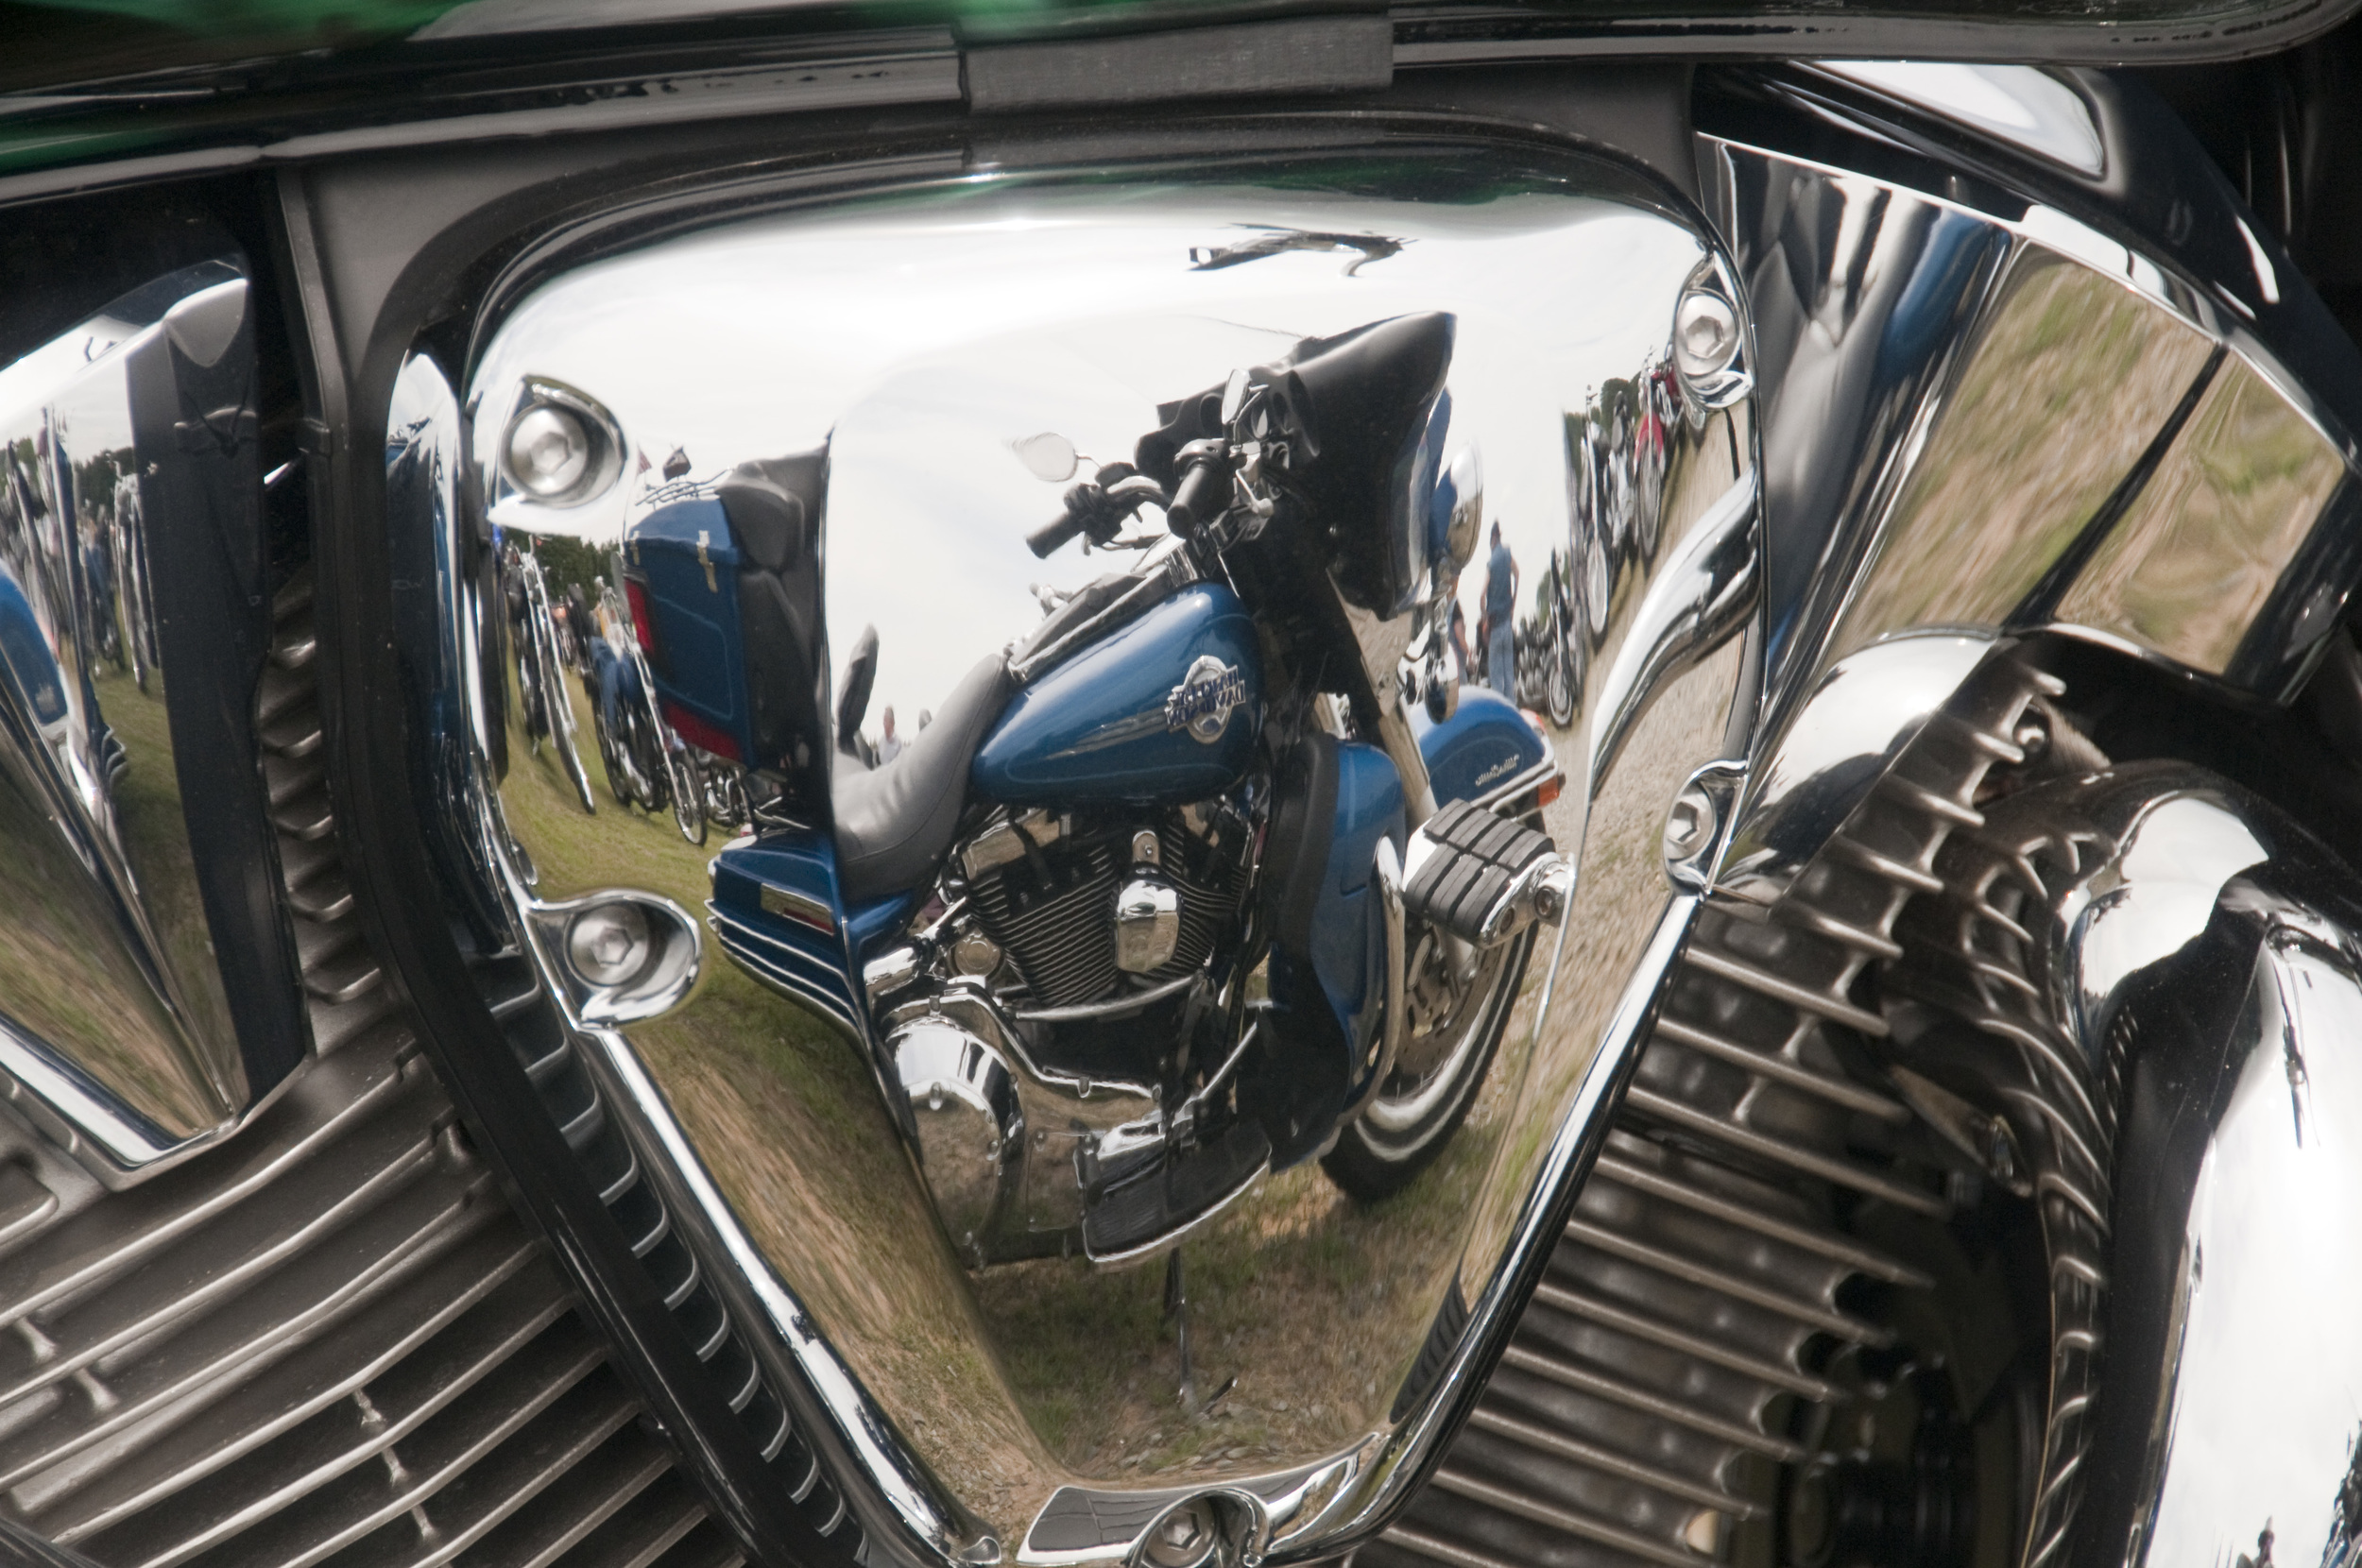 Harley reflection